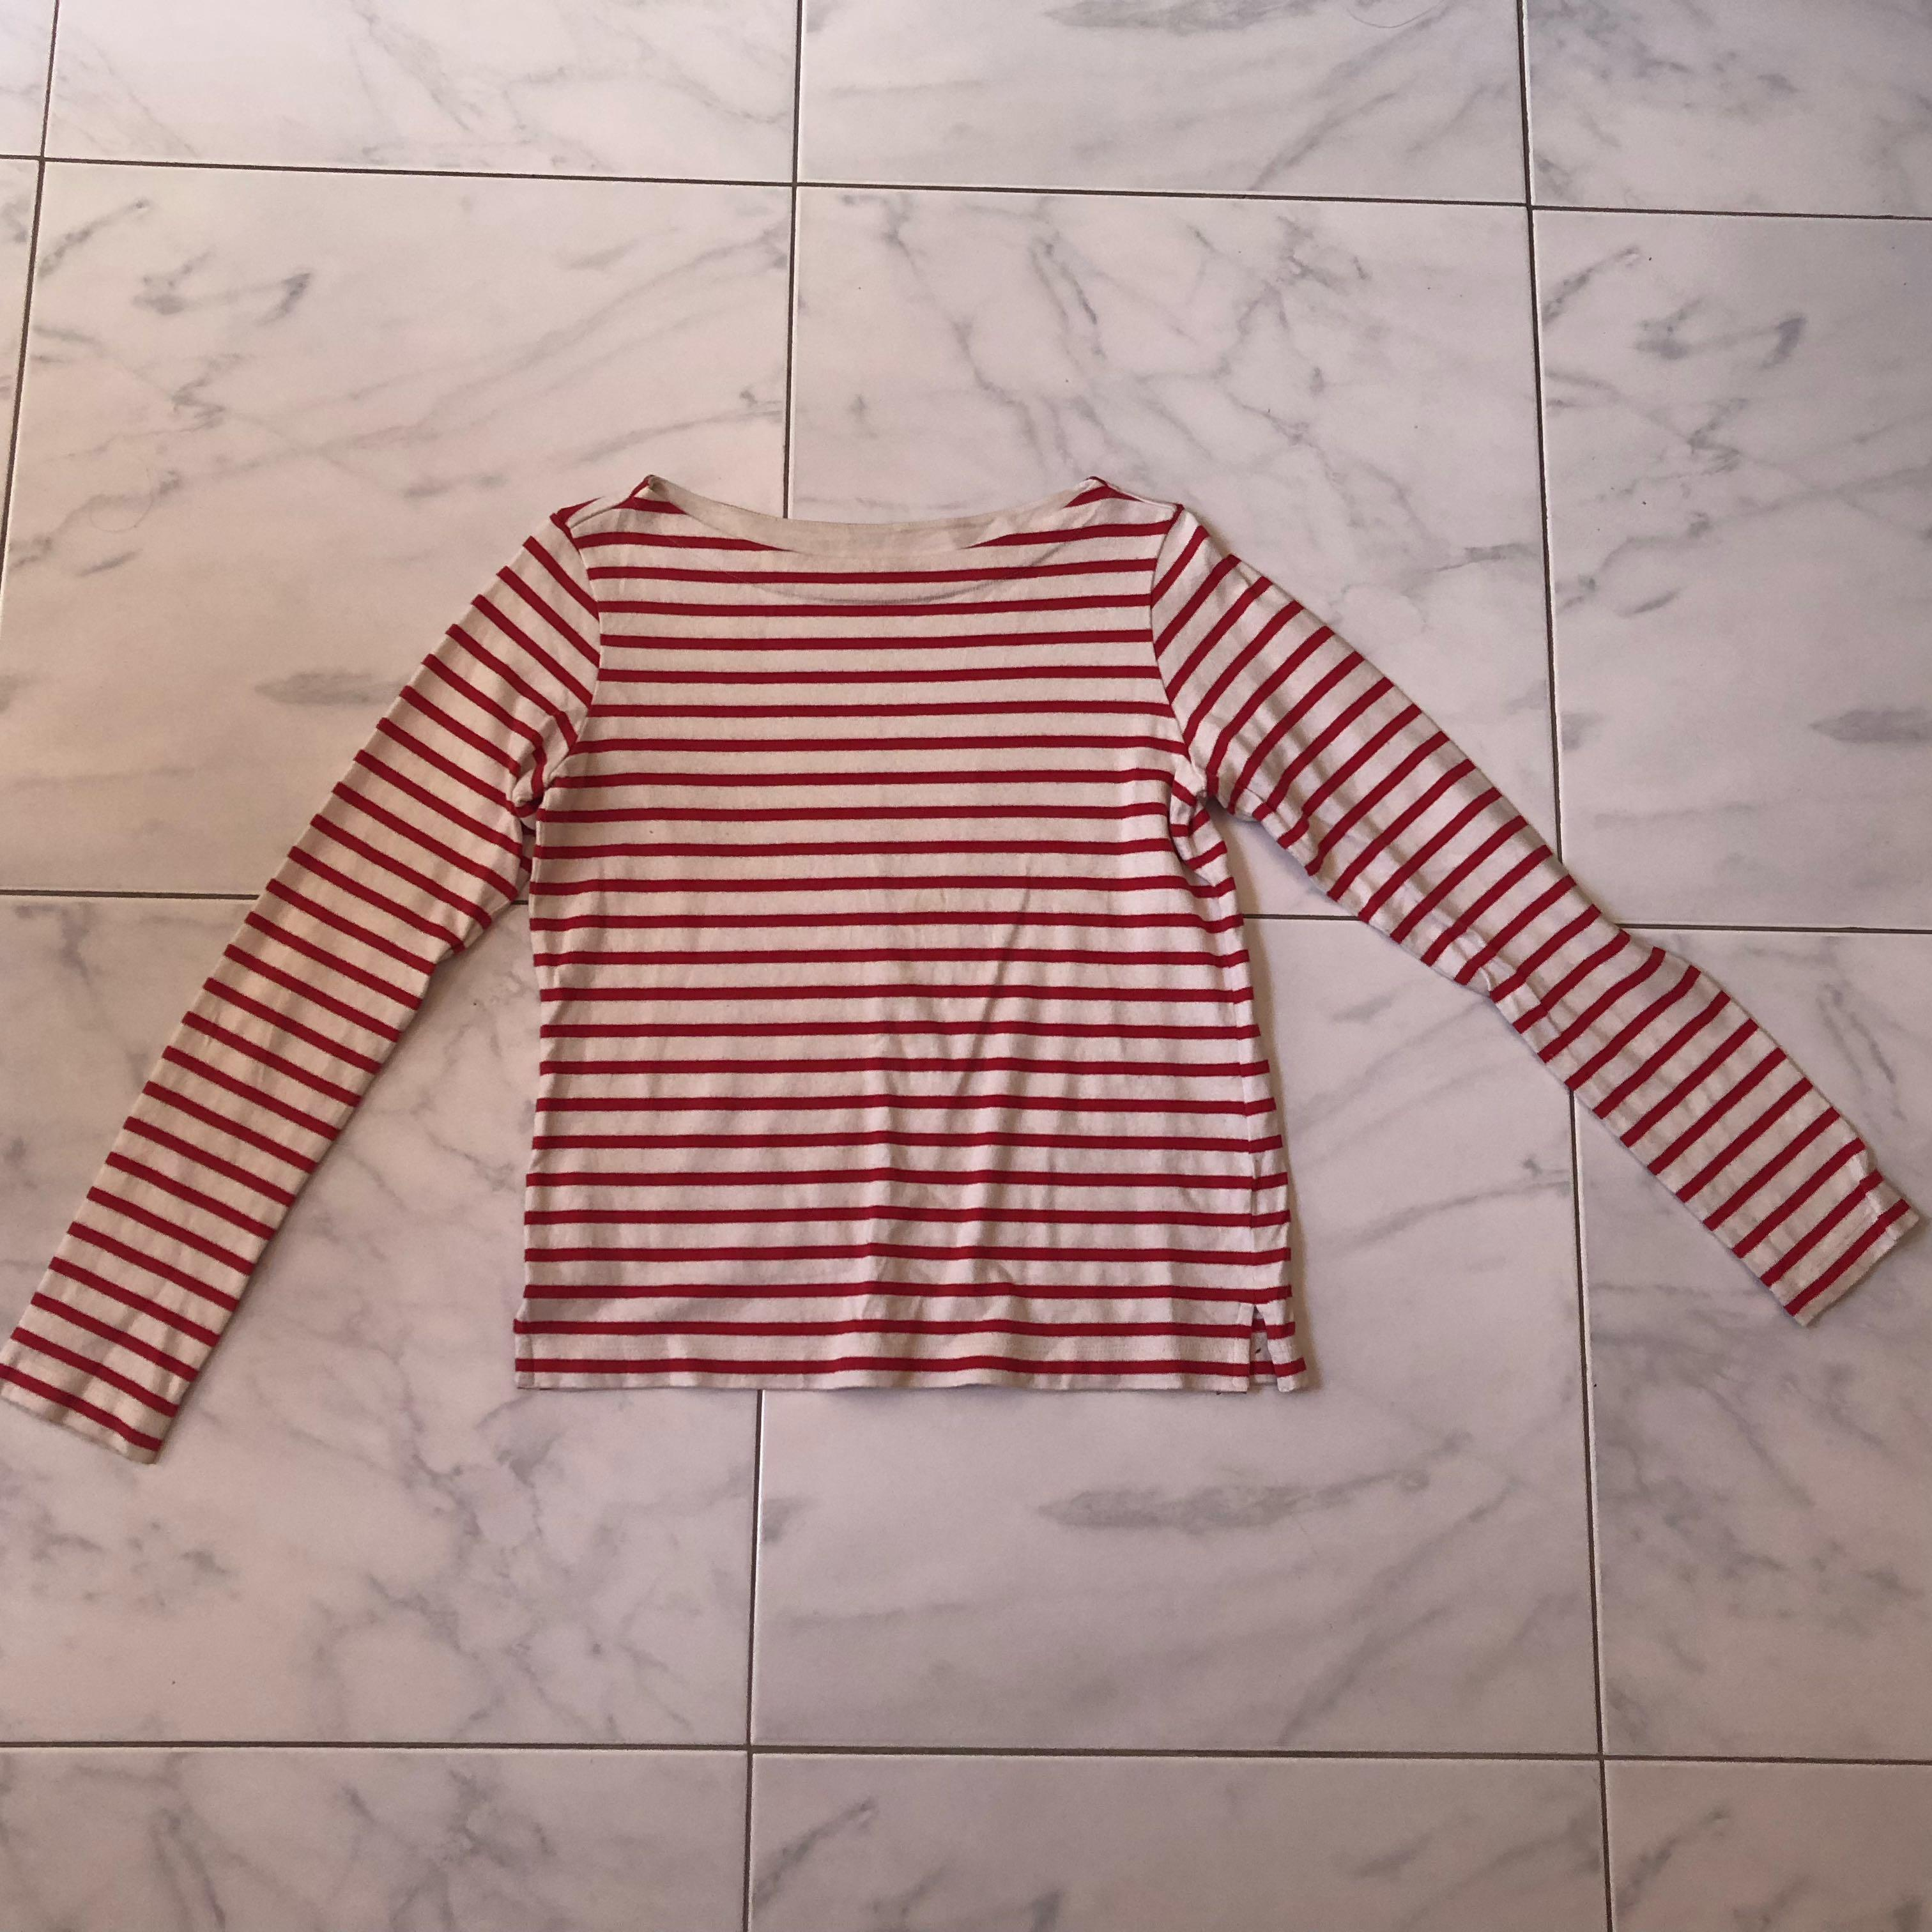 Uniqlo red white striped long sleeve shirt